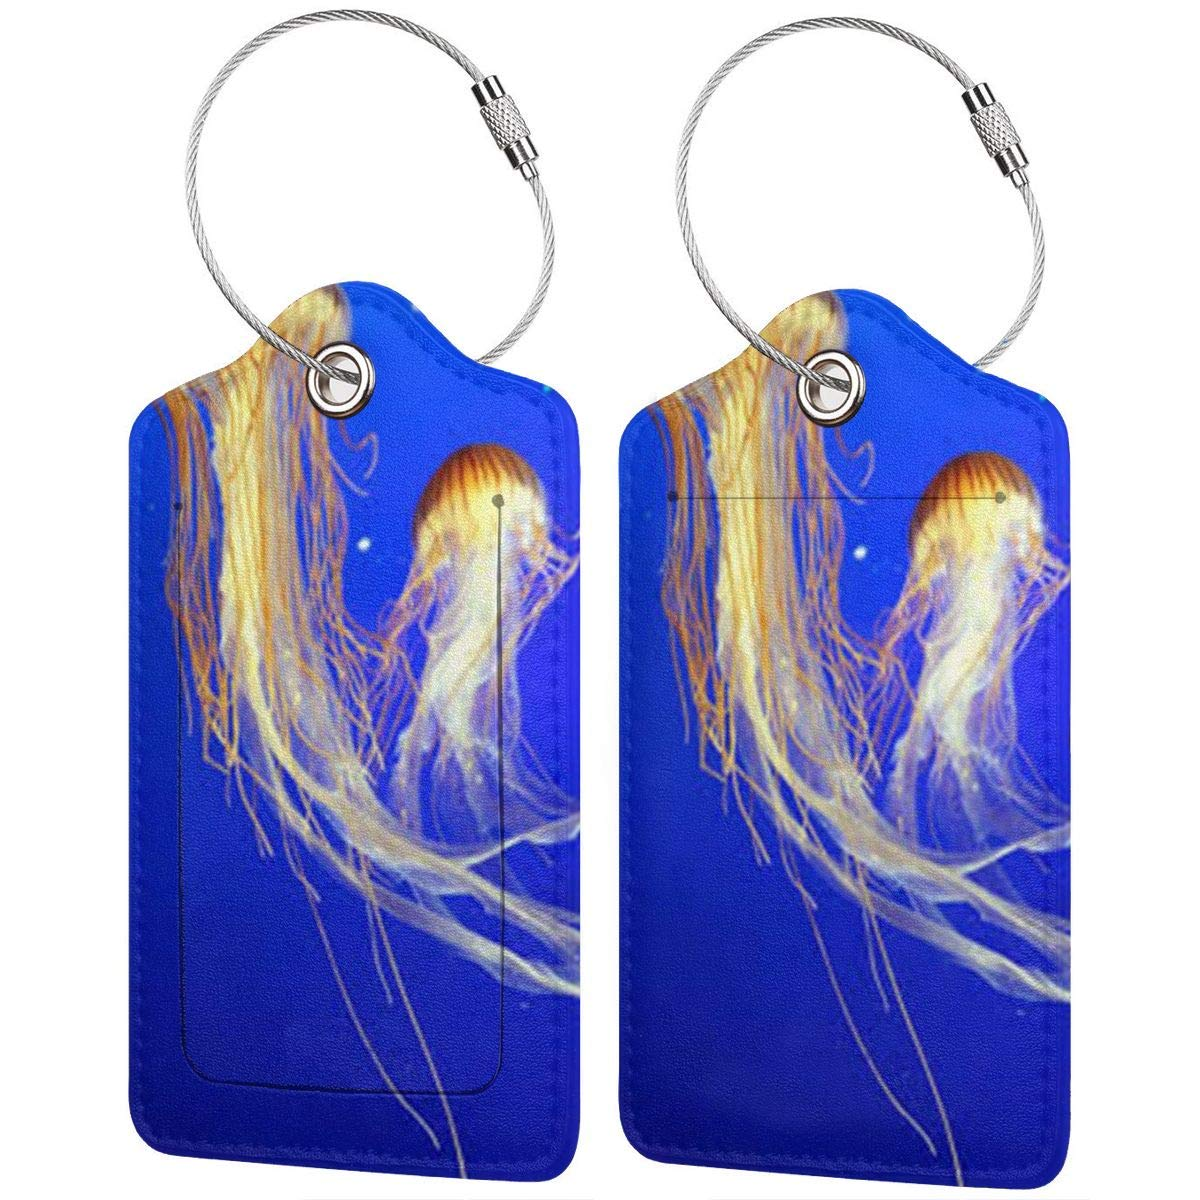 Jellyfish Leather Luggage Tags Personalized Address Card With Adjustable Strap